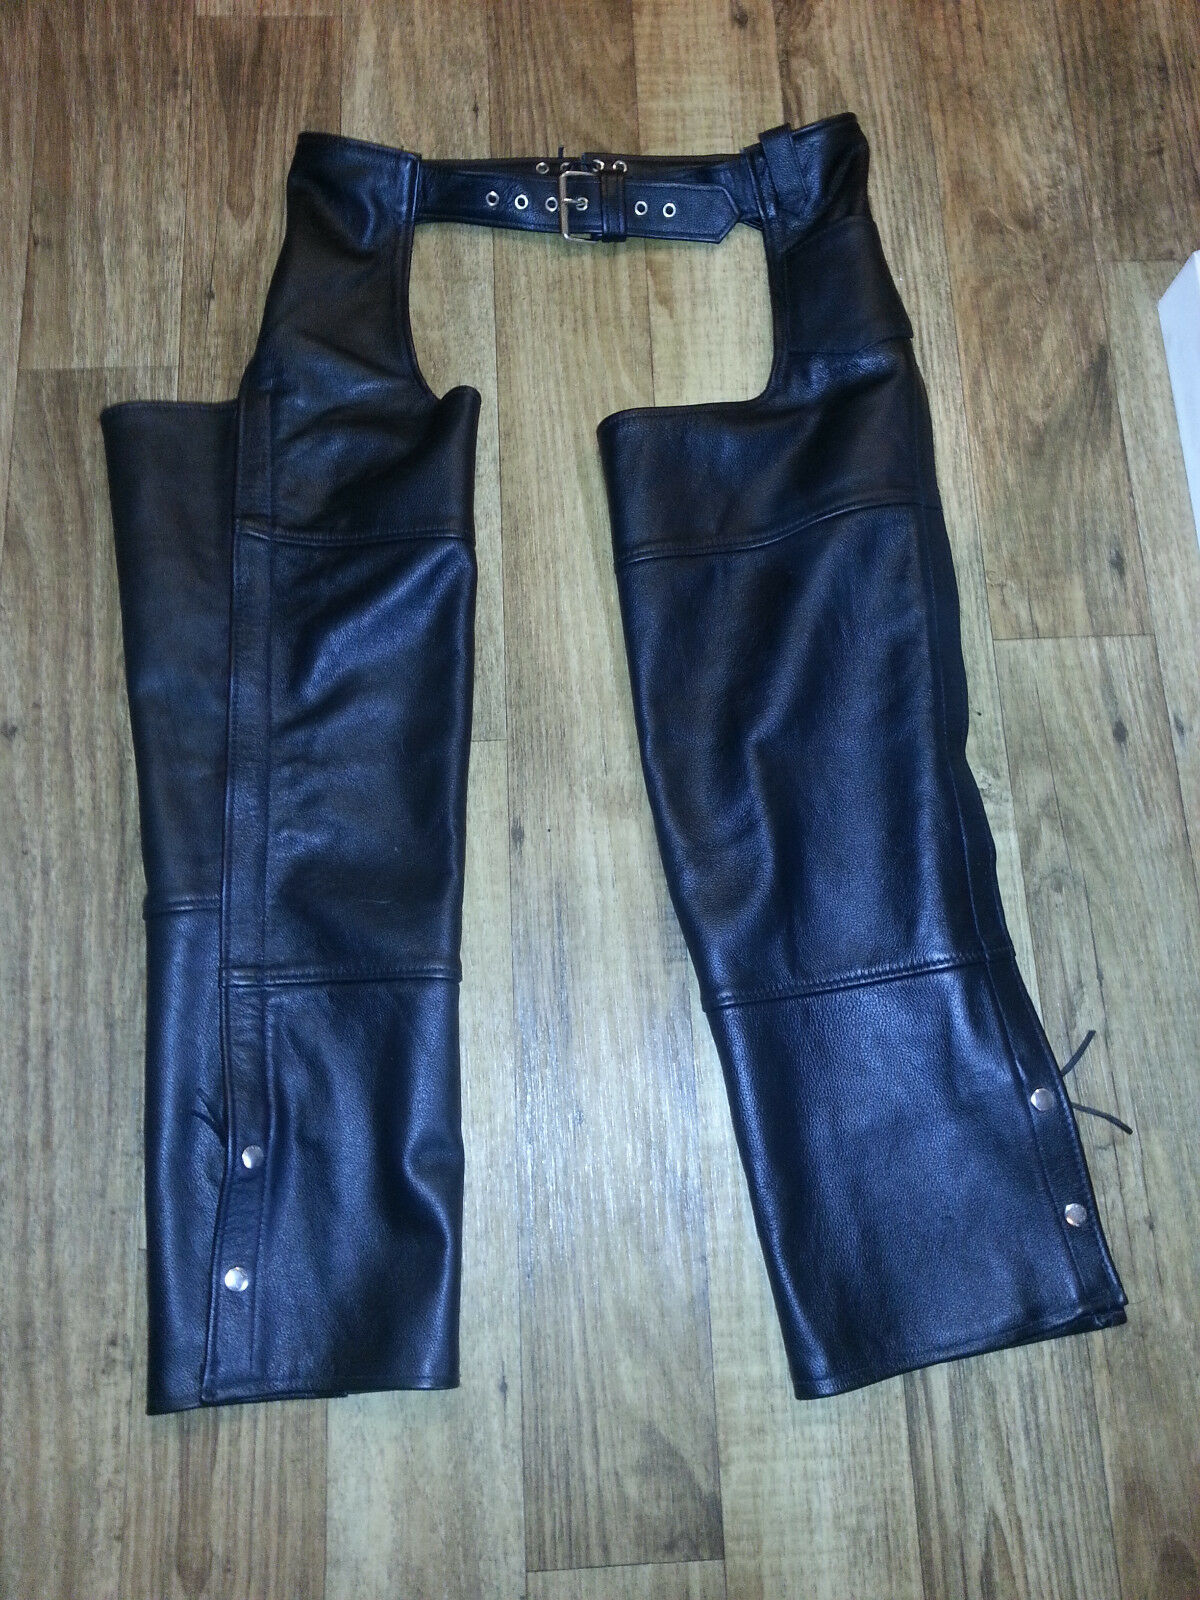 Womens  FMC Leather Chaps size Large worn once   high quality